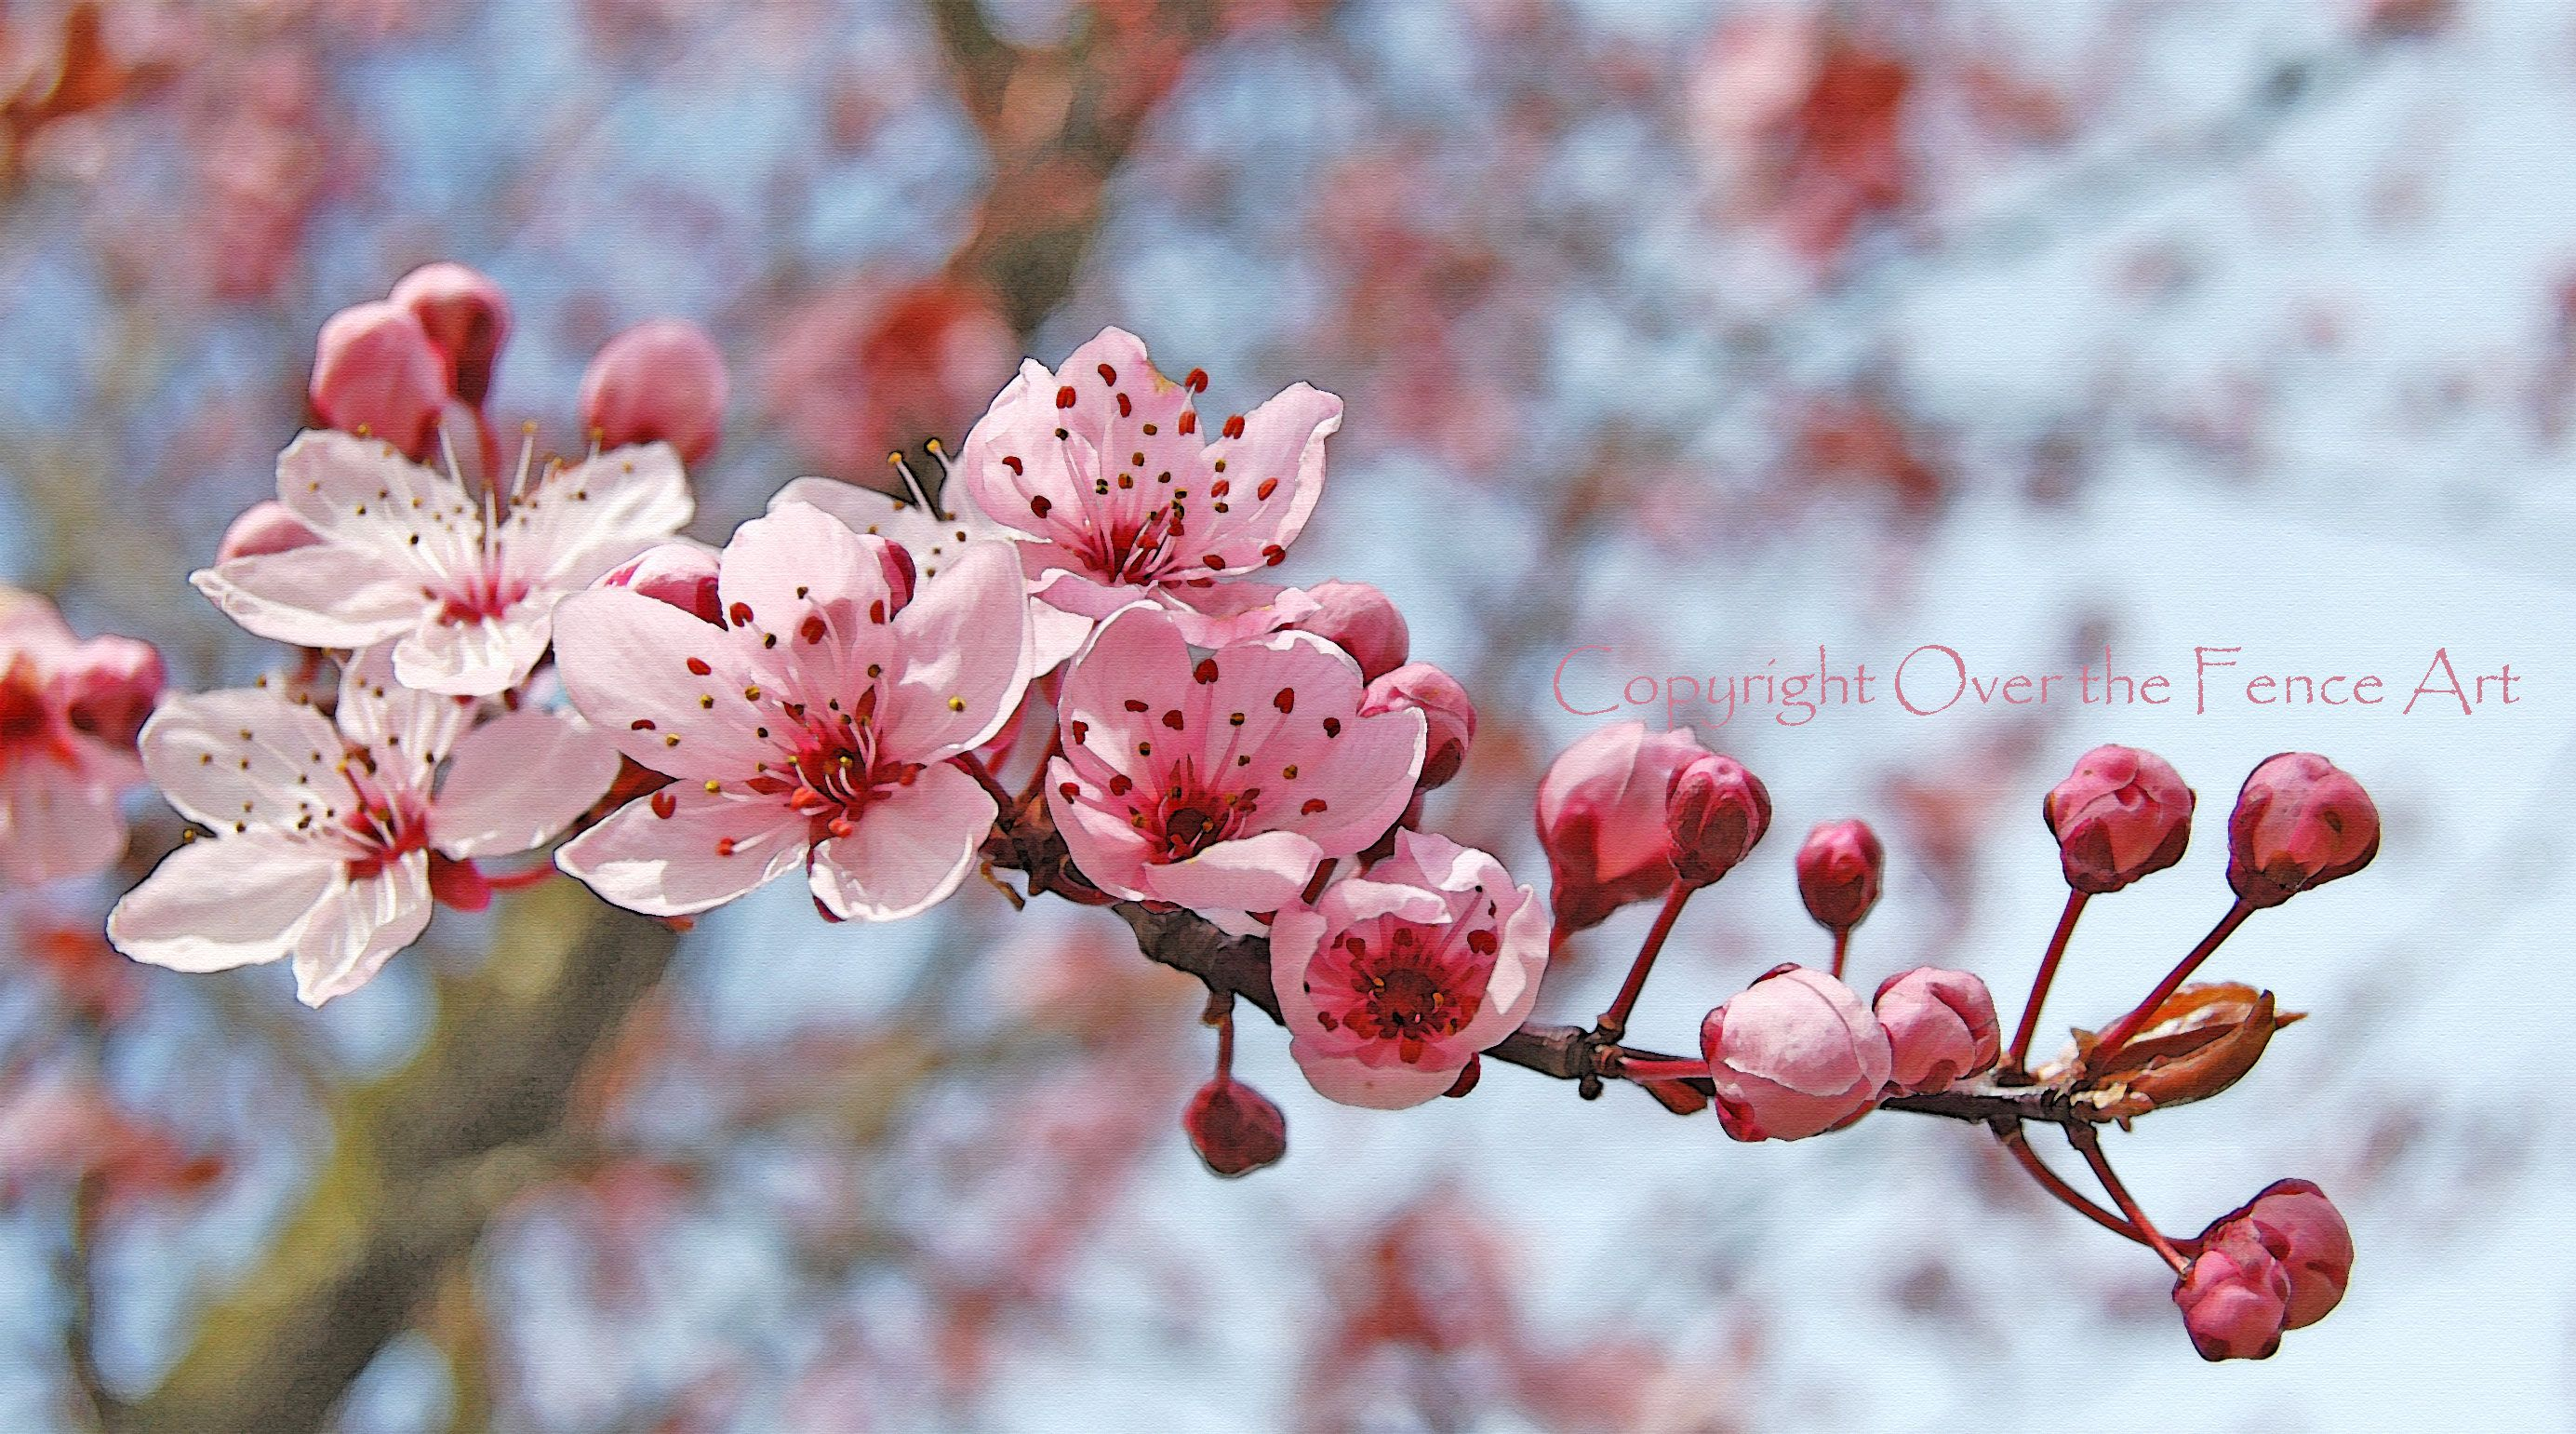 Flower Photography Greeting Card Pink And Cranberry Cherry Etsy Flowering Cherry Tree Flowers Photography Cherry Tree